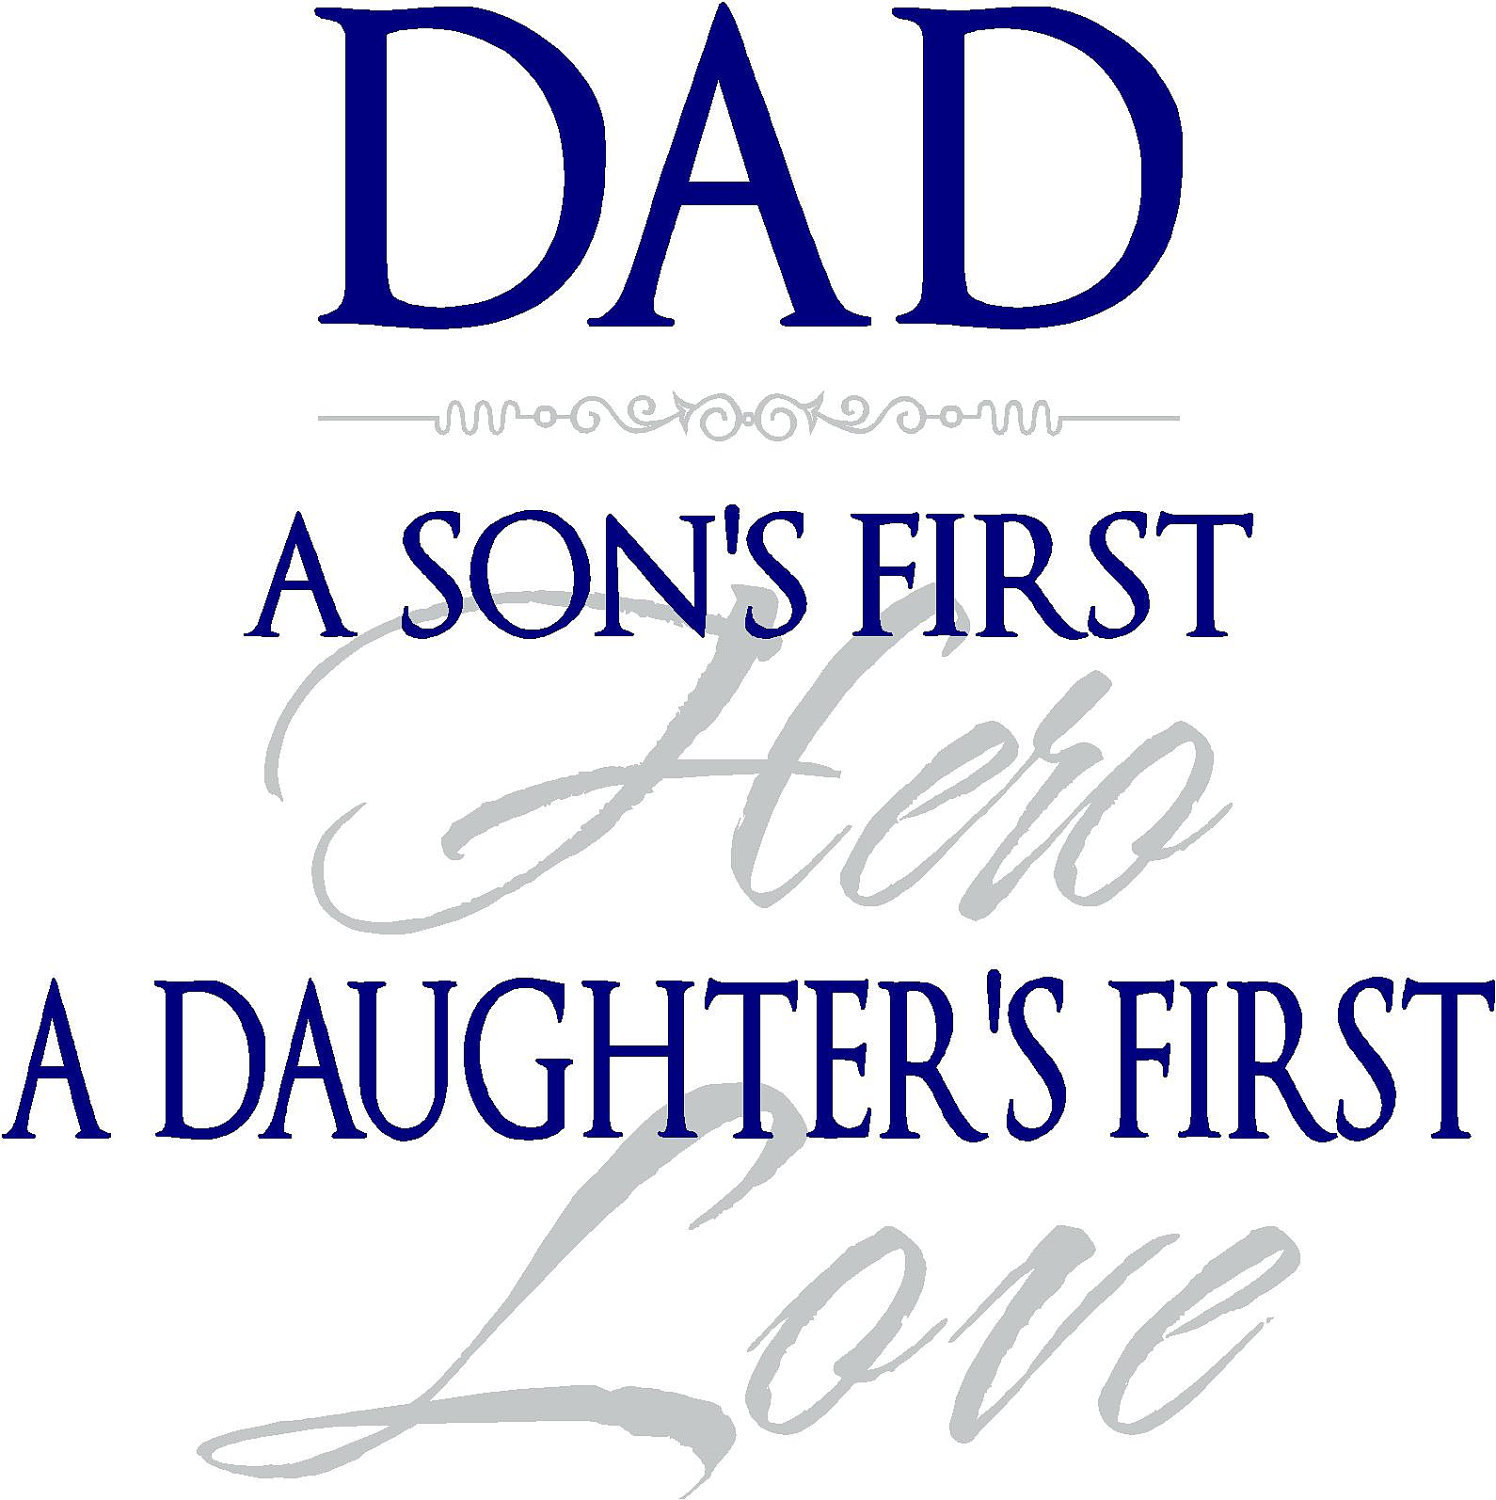 quote dad a son 39 s first hero a daughter 39 s first by vinylforall